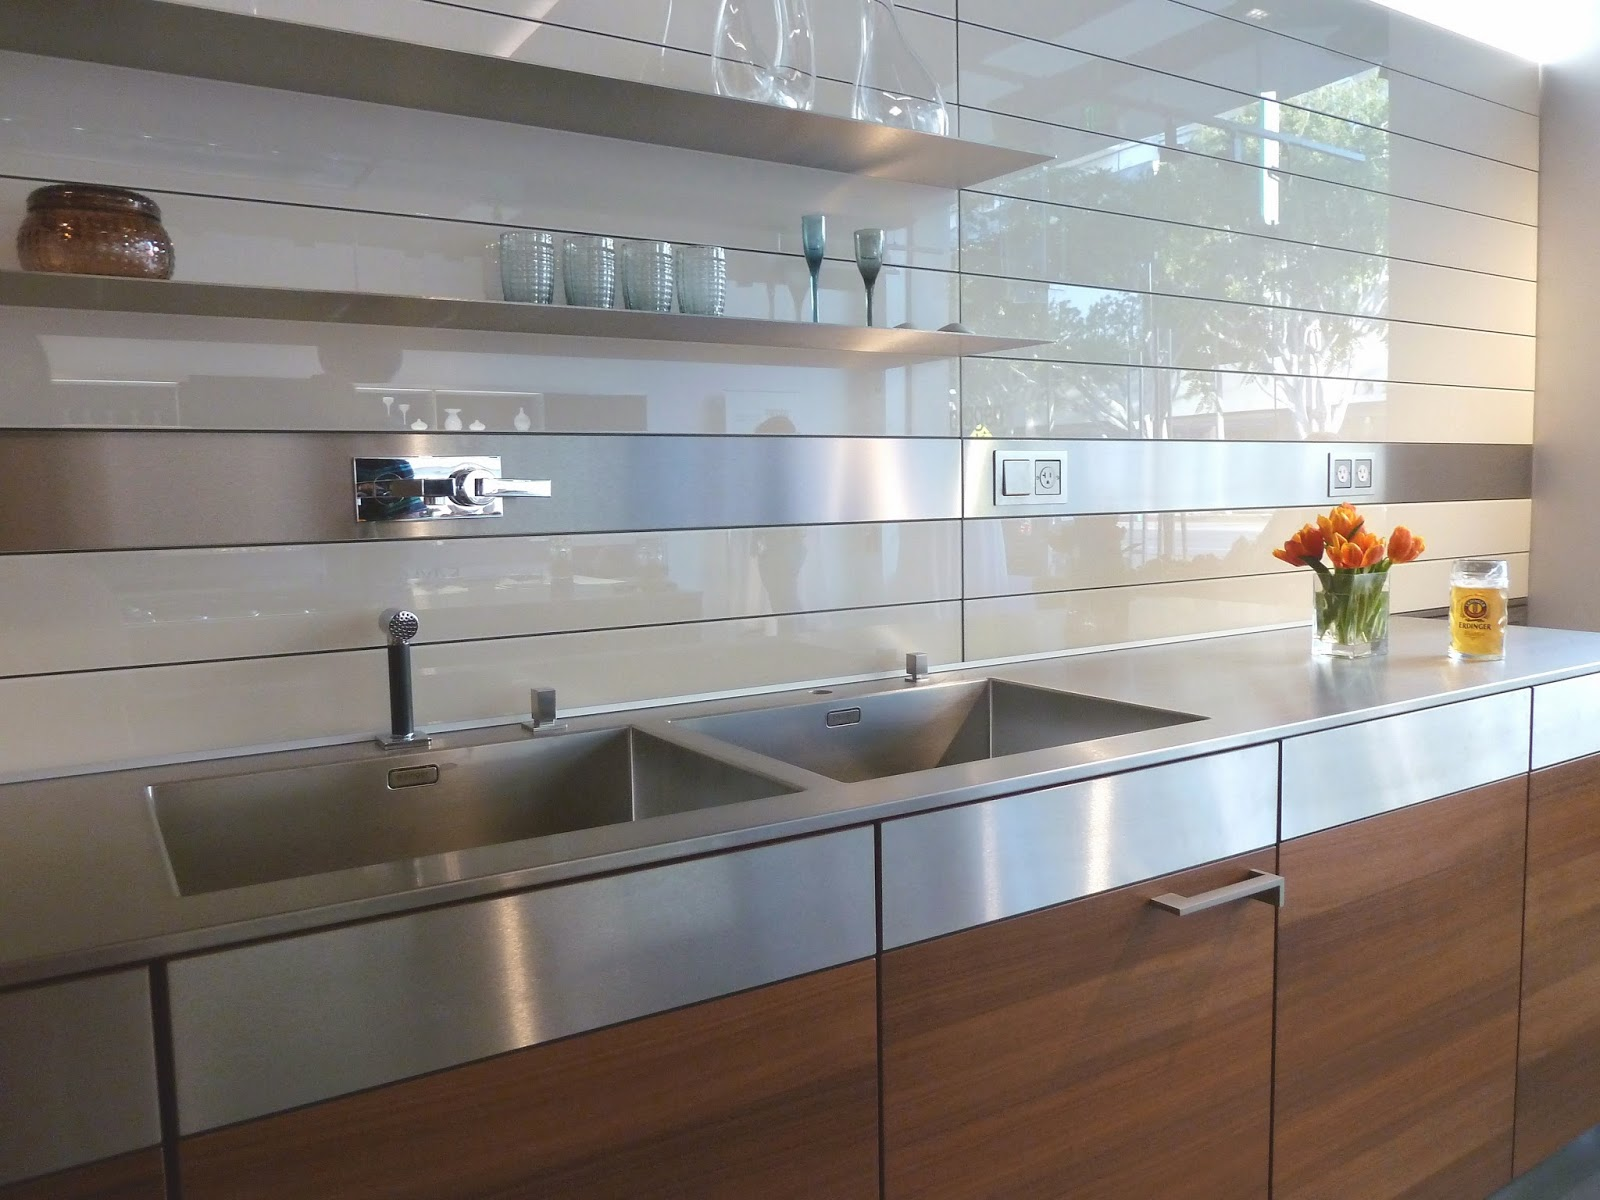 Design Vignettes: #BlogTourLA in the Kitchen